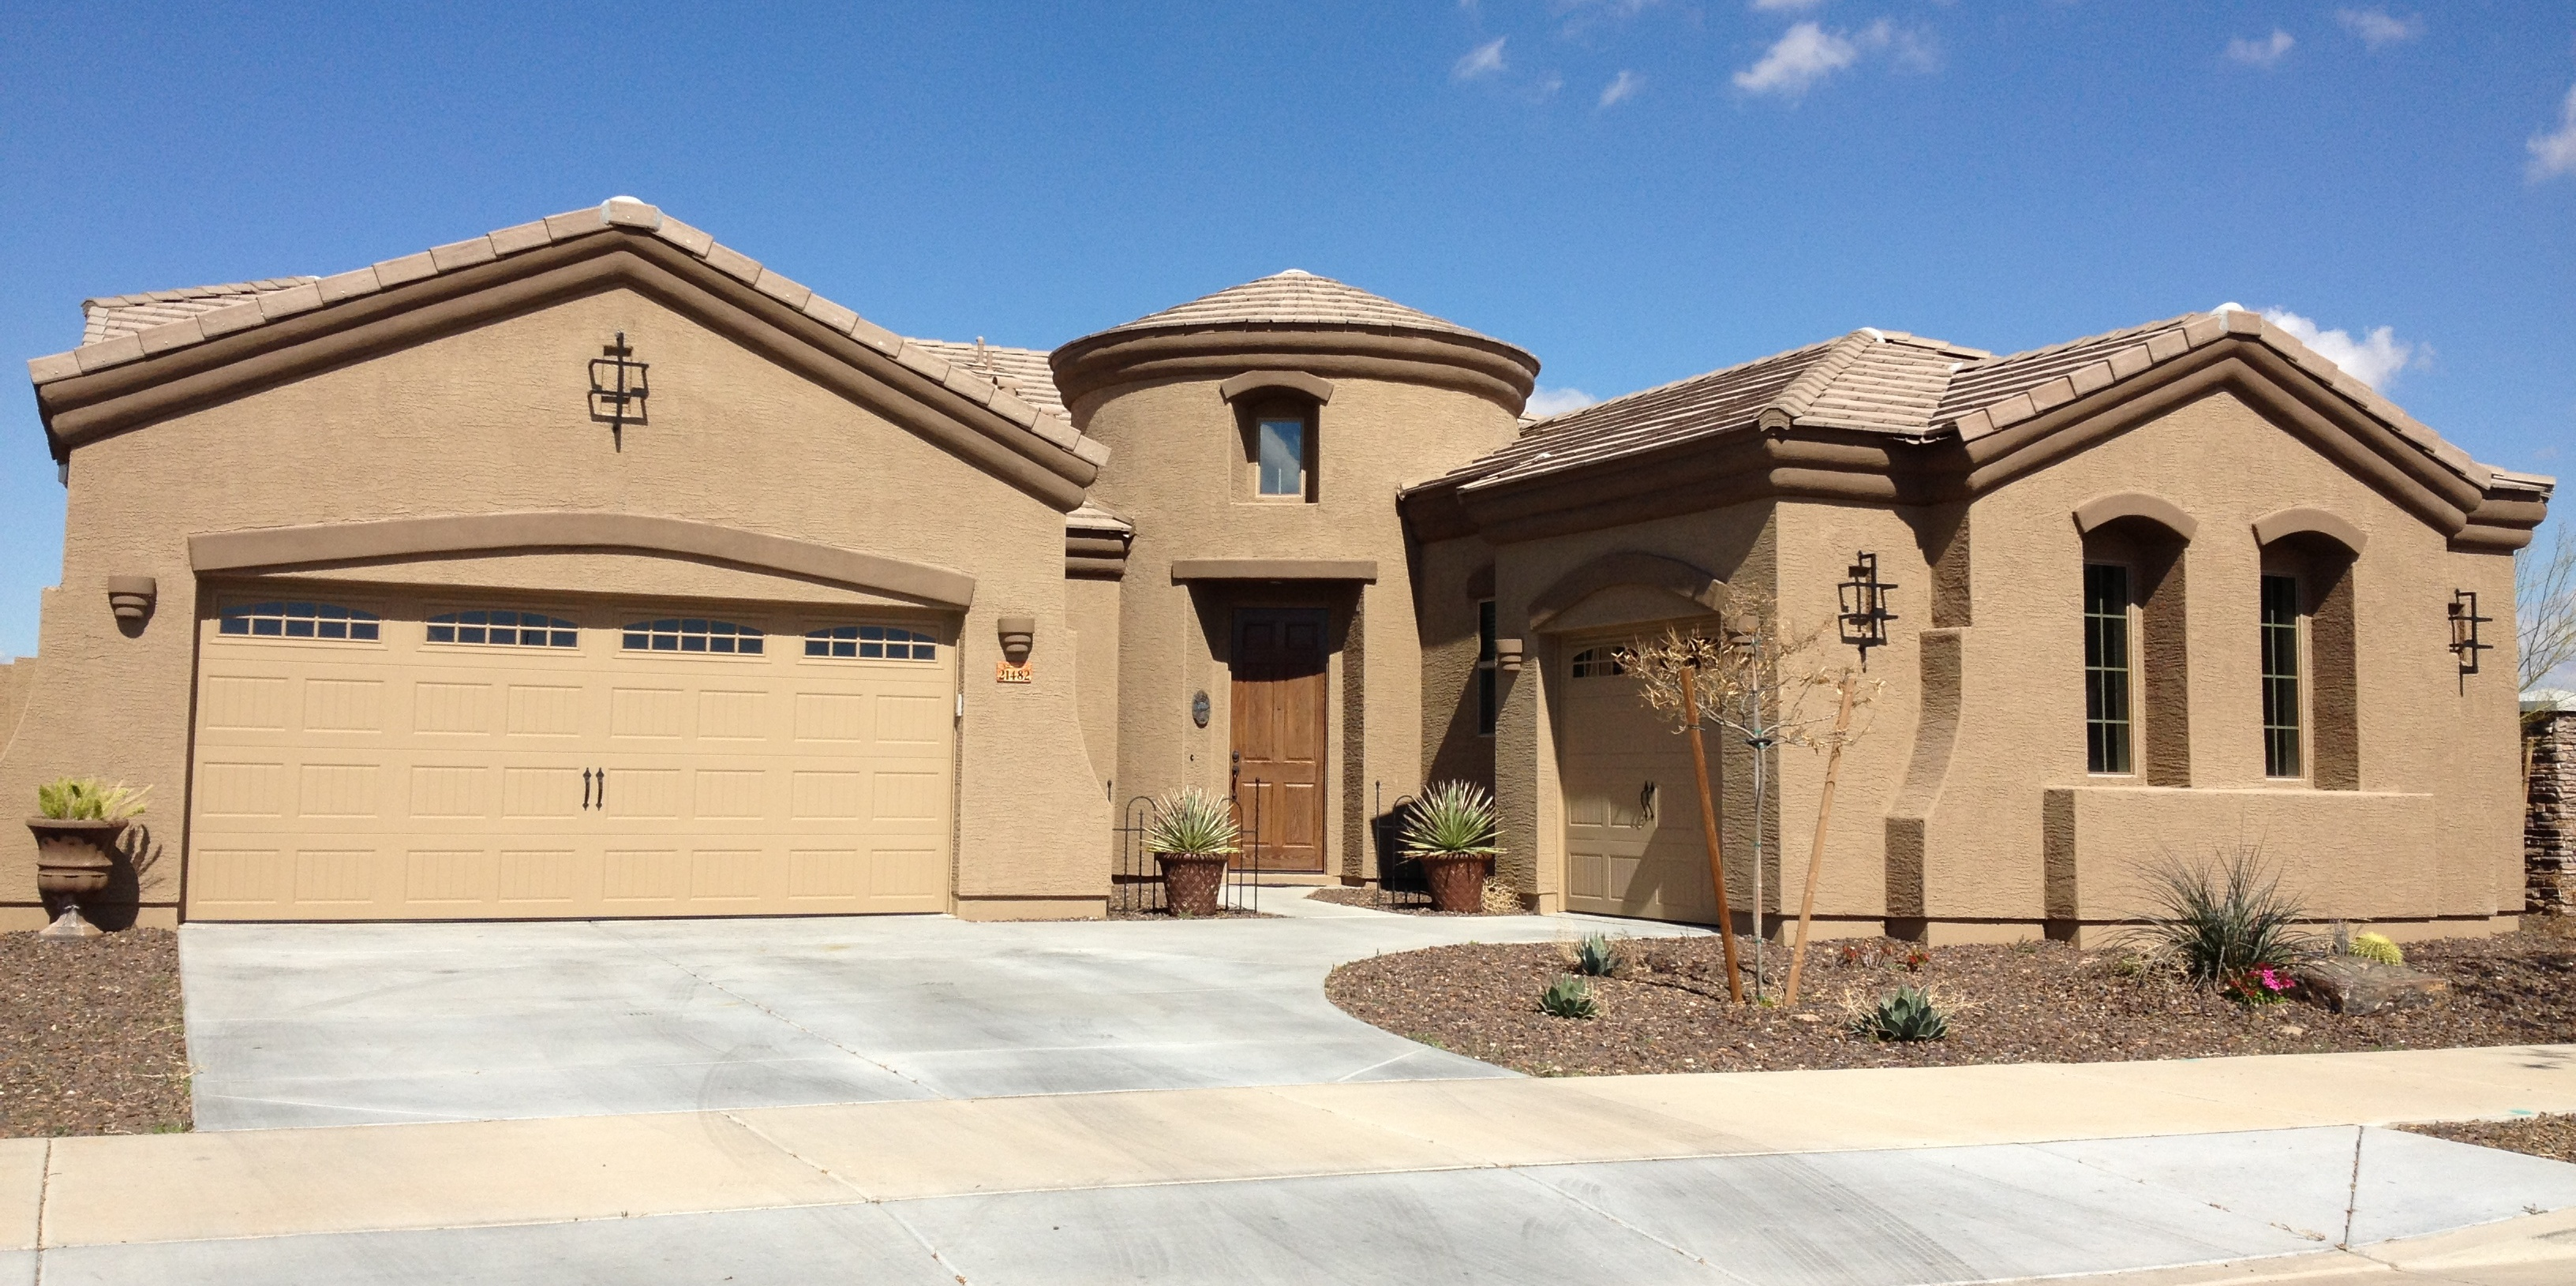 Gold Canyon Homes for Sale - Houses for Sale in Gold Canyon Arizona